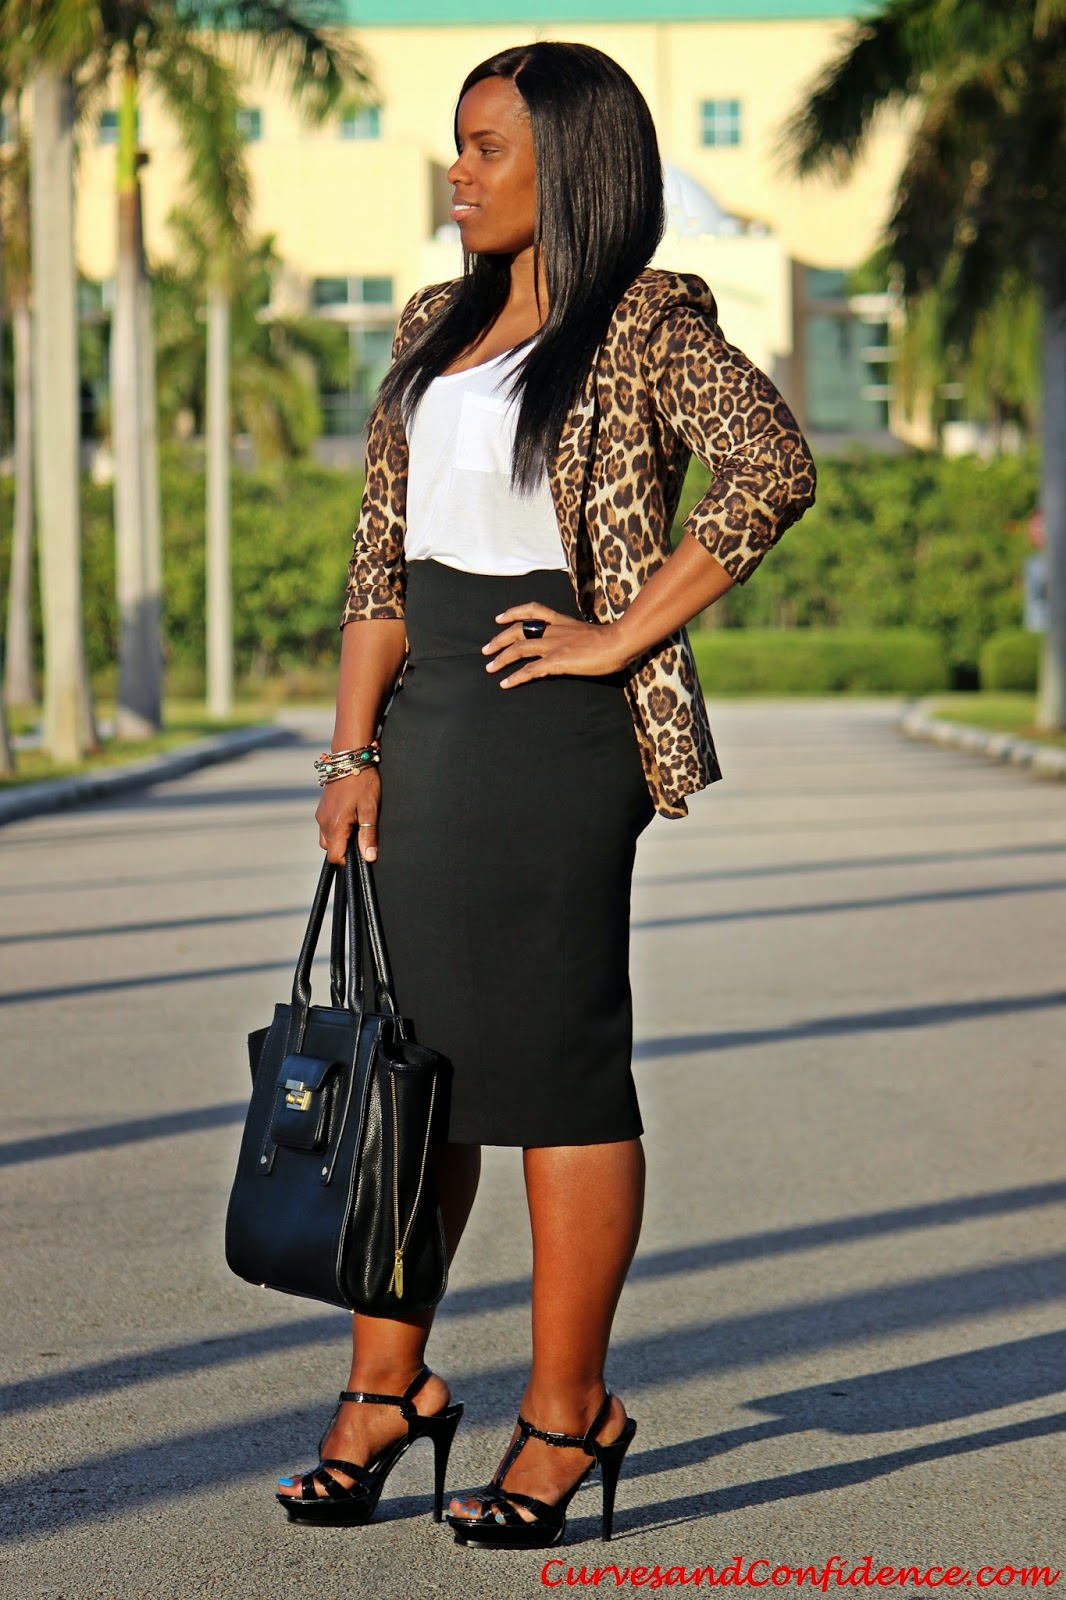 Black Amp Leopard Curves And Confidence